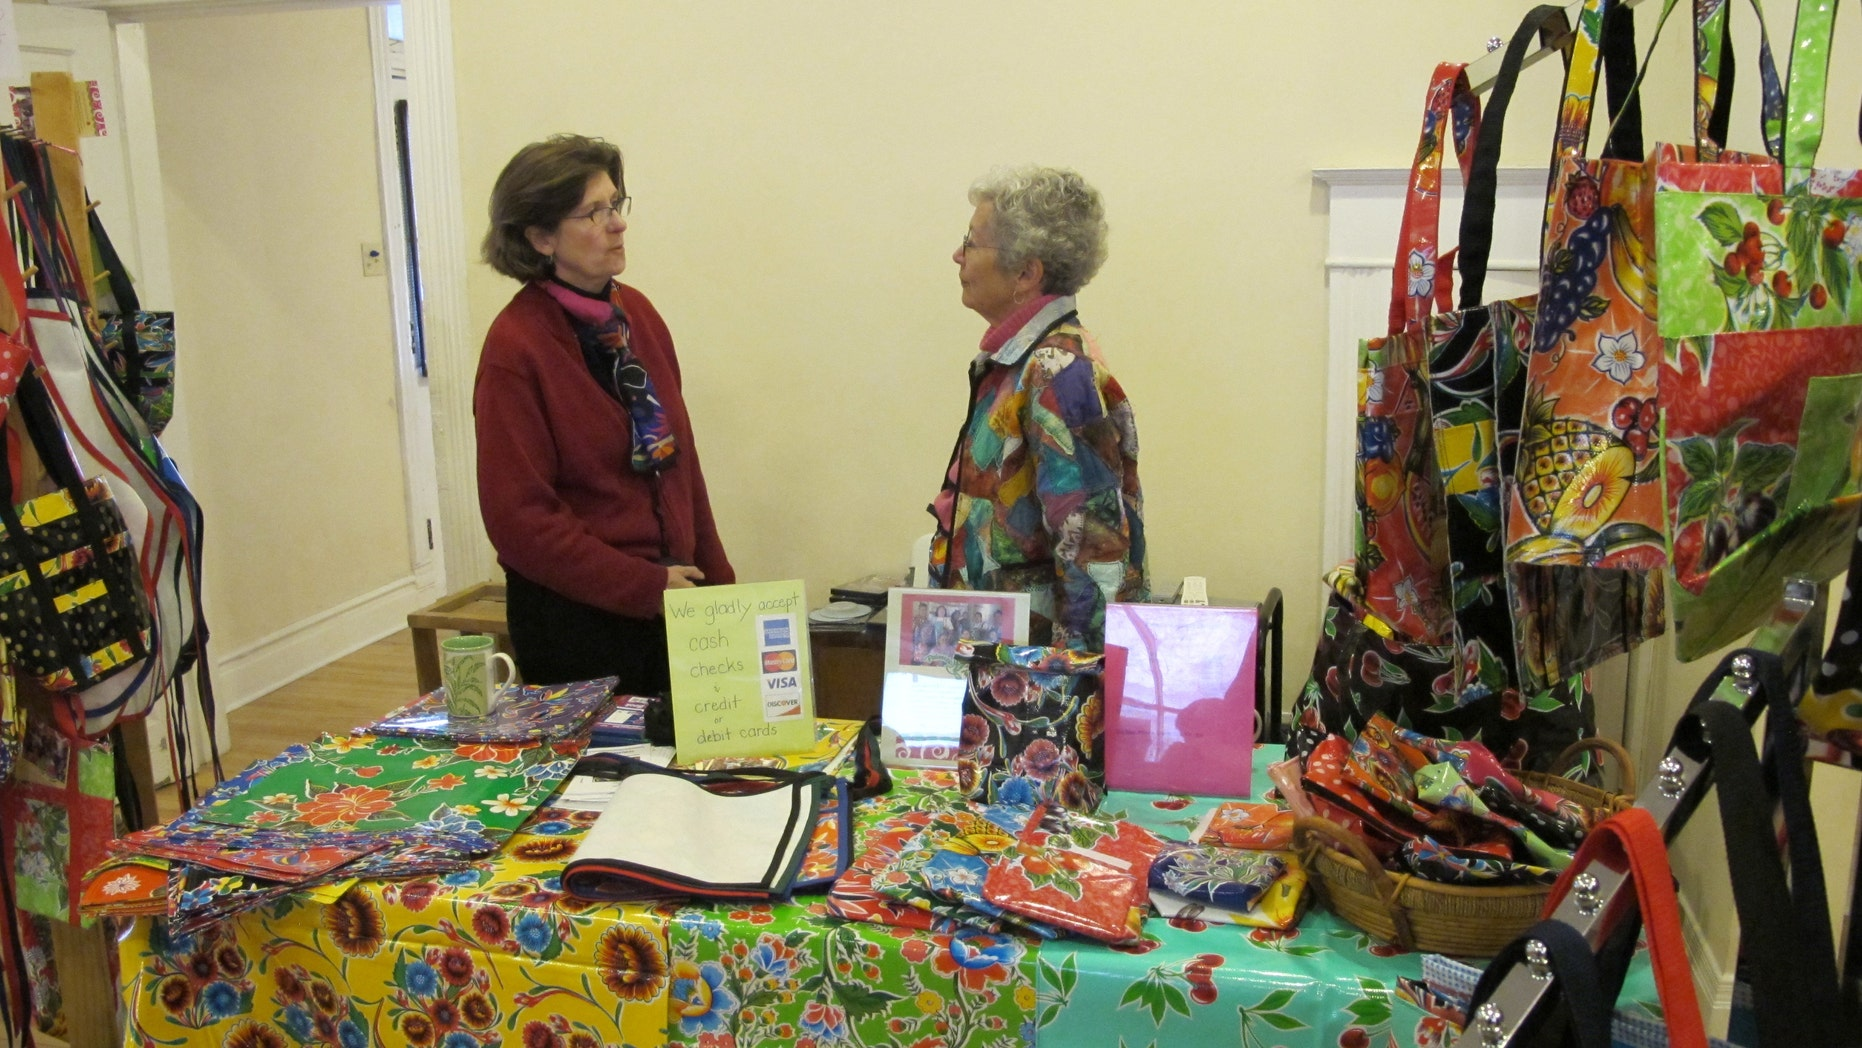 Polly Edmunds from Border Partners speaks with a fellow seller. Edmunds sells waterproof items made from Mexican oilcloth to benefit Palomas Oilcloth Designs.